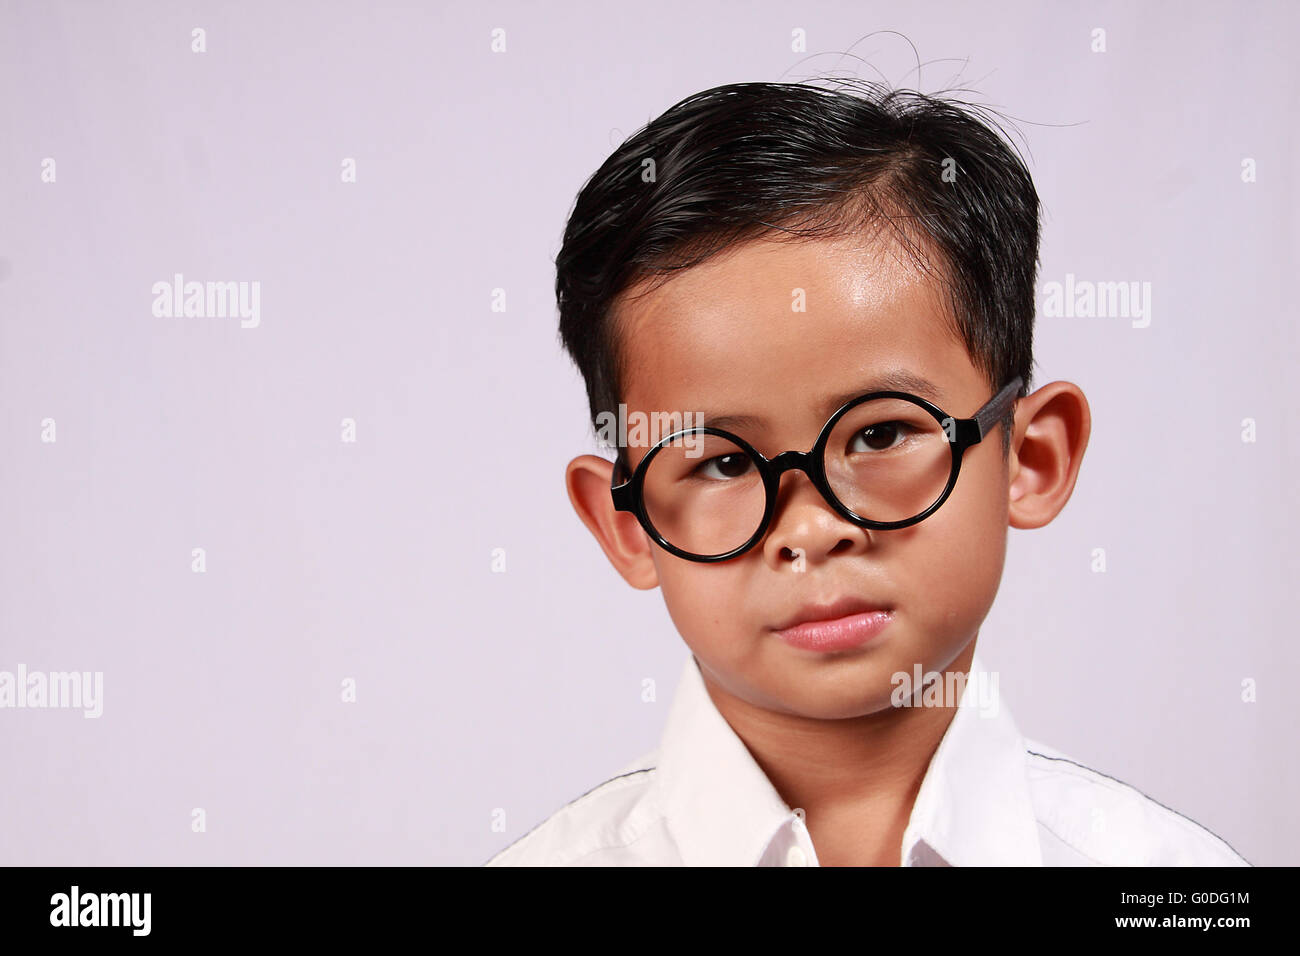 a5fddfa66e1c Portrait of smart young Asian boy with glasses showing his adorable smile -  Stock Image